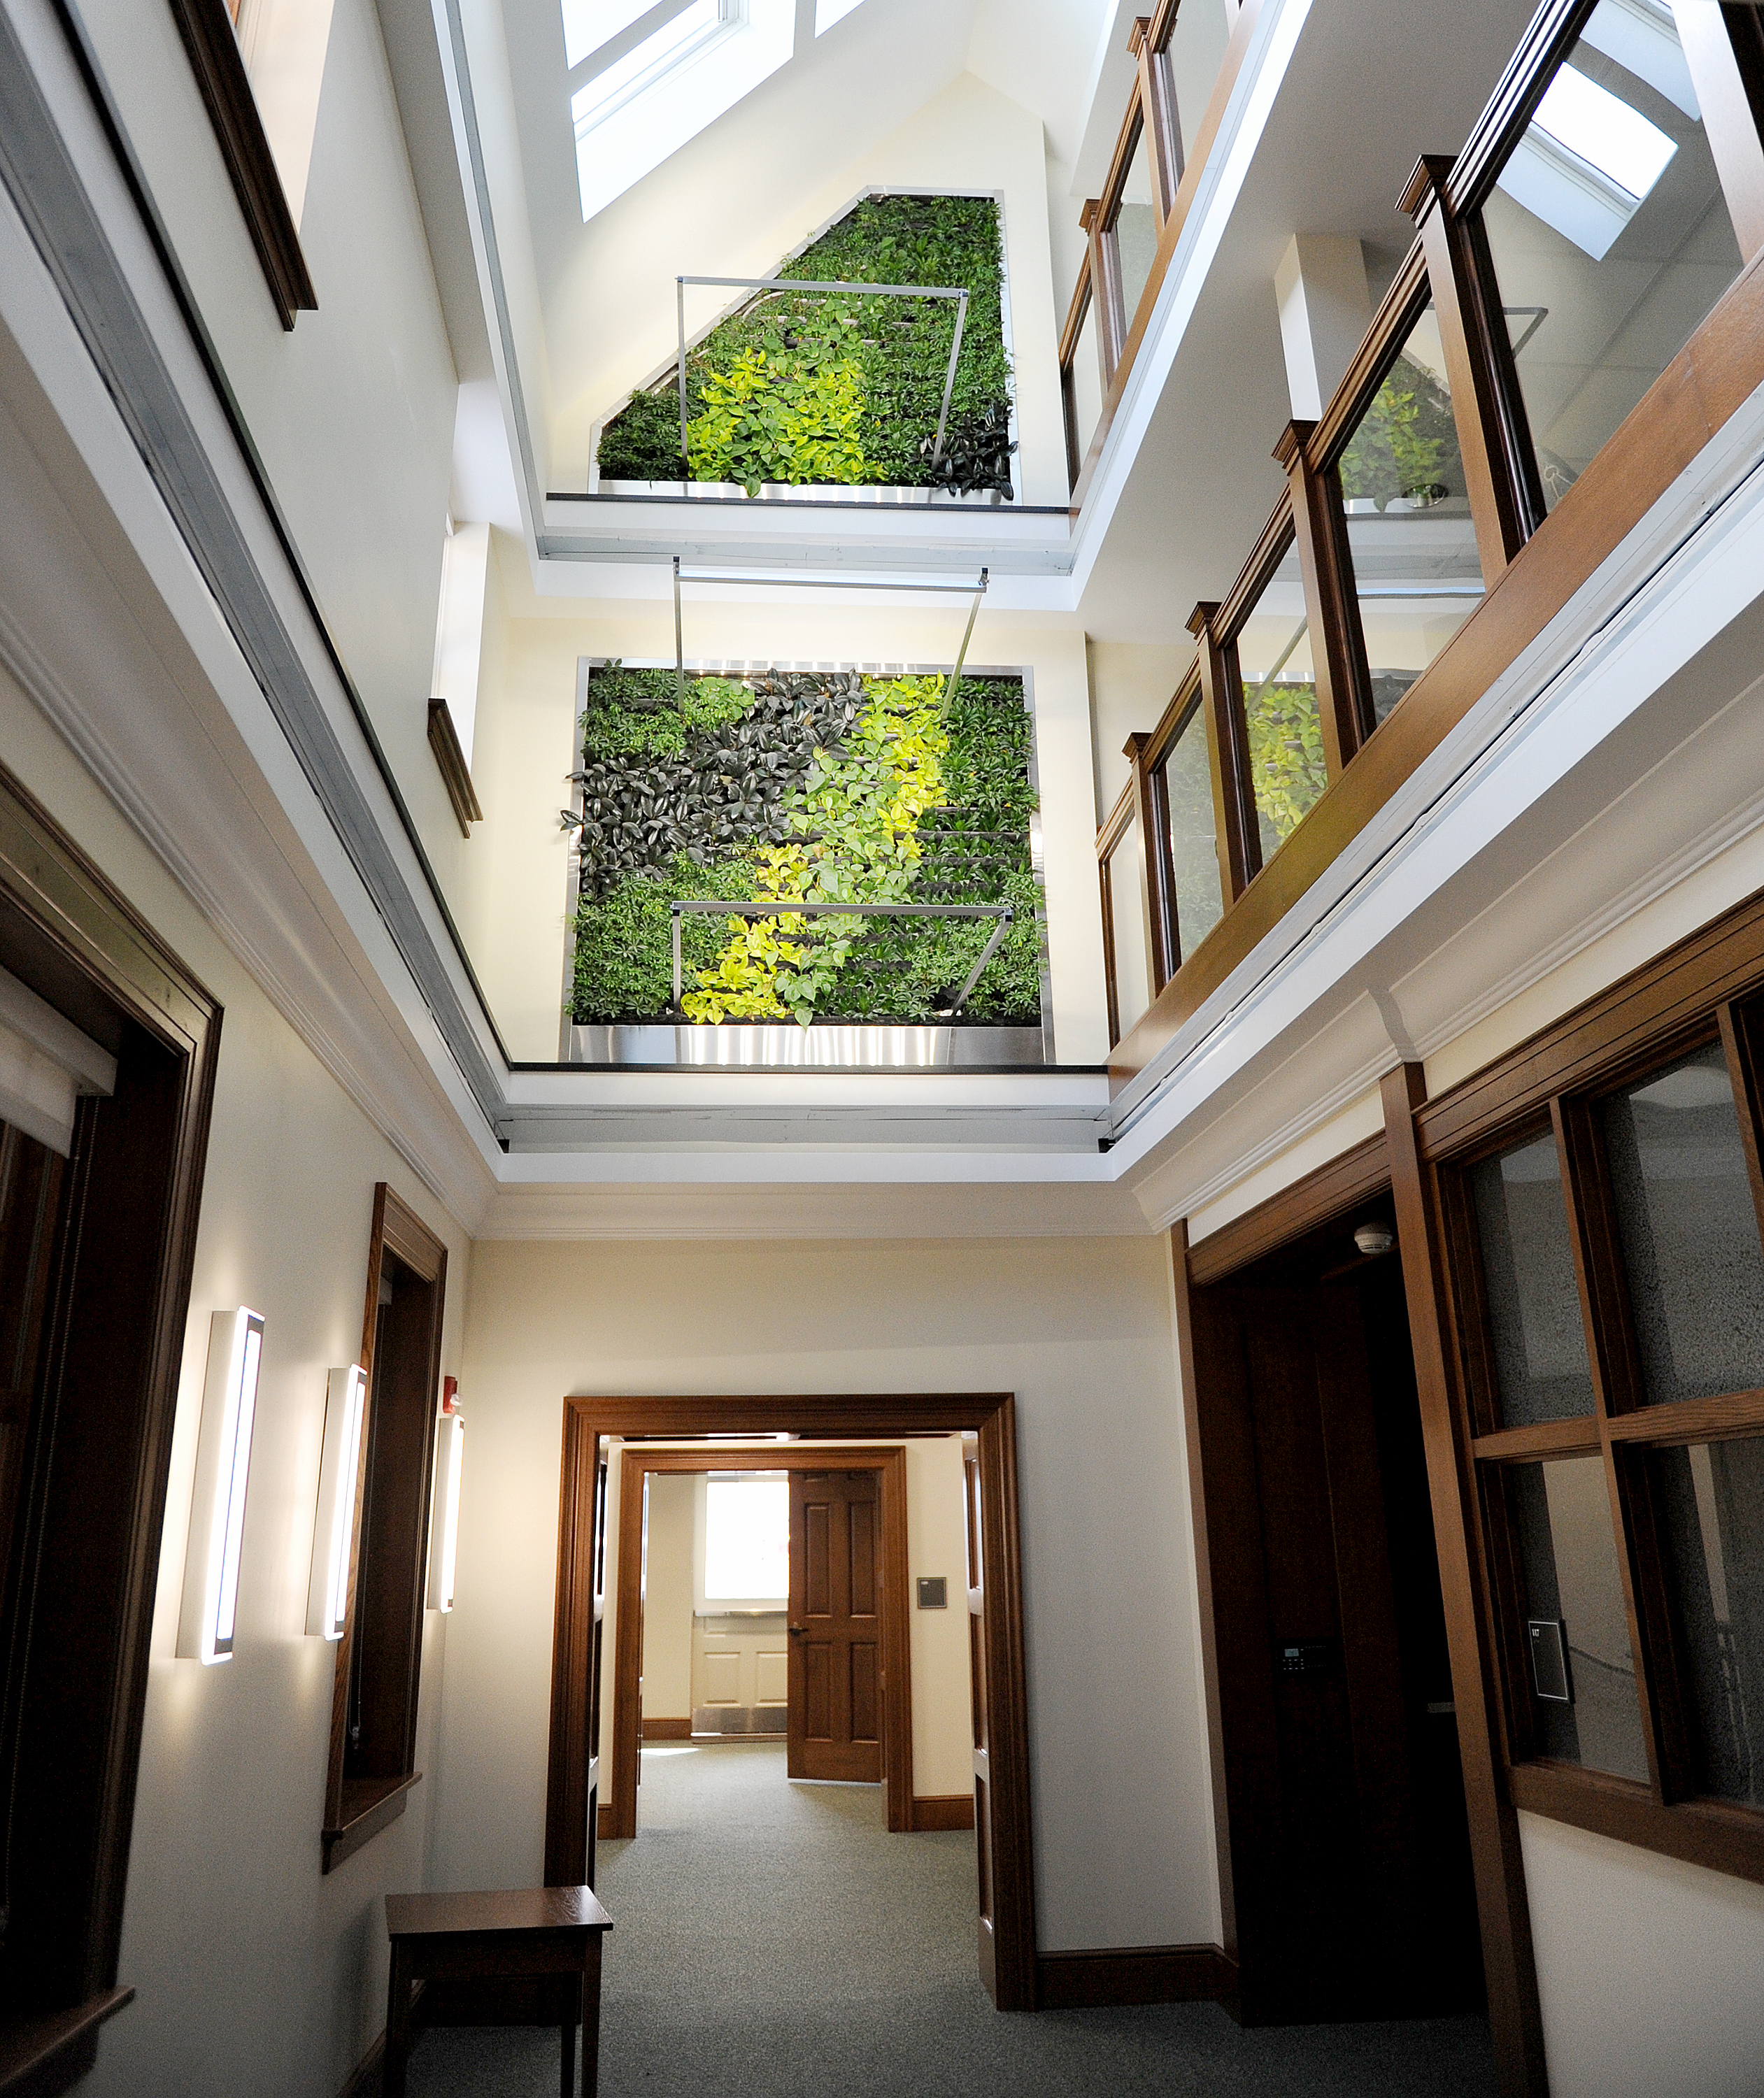 The new atrium at Hildreth-Mirza Hall at Bucknell University.